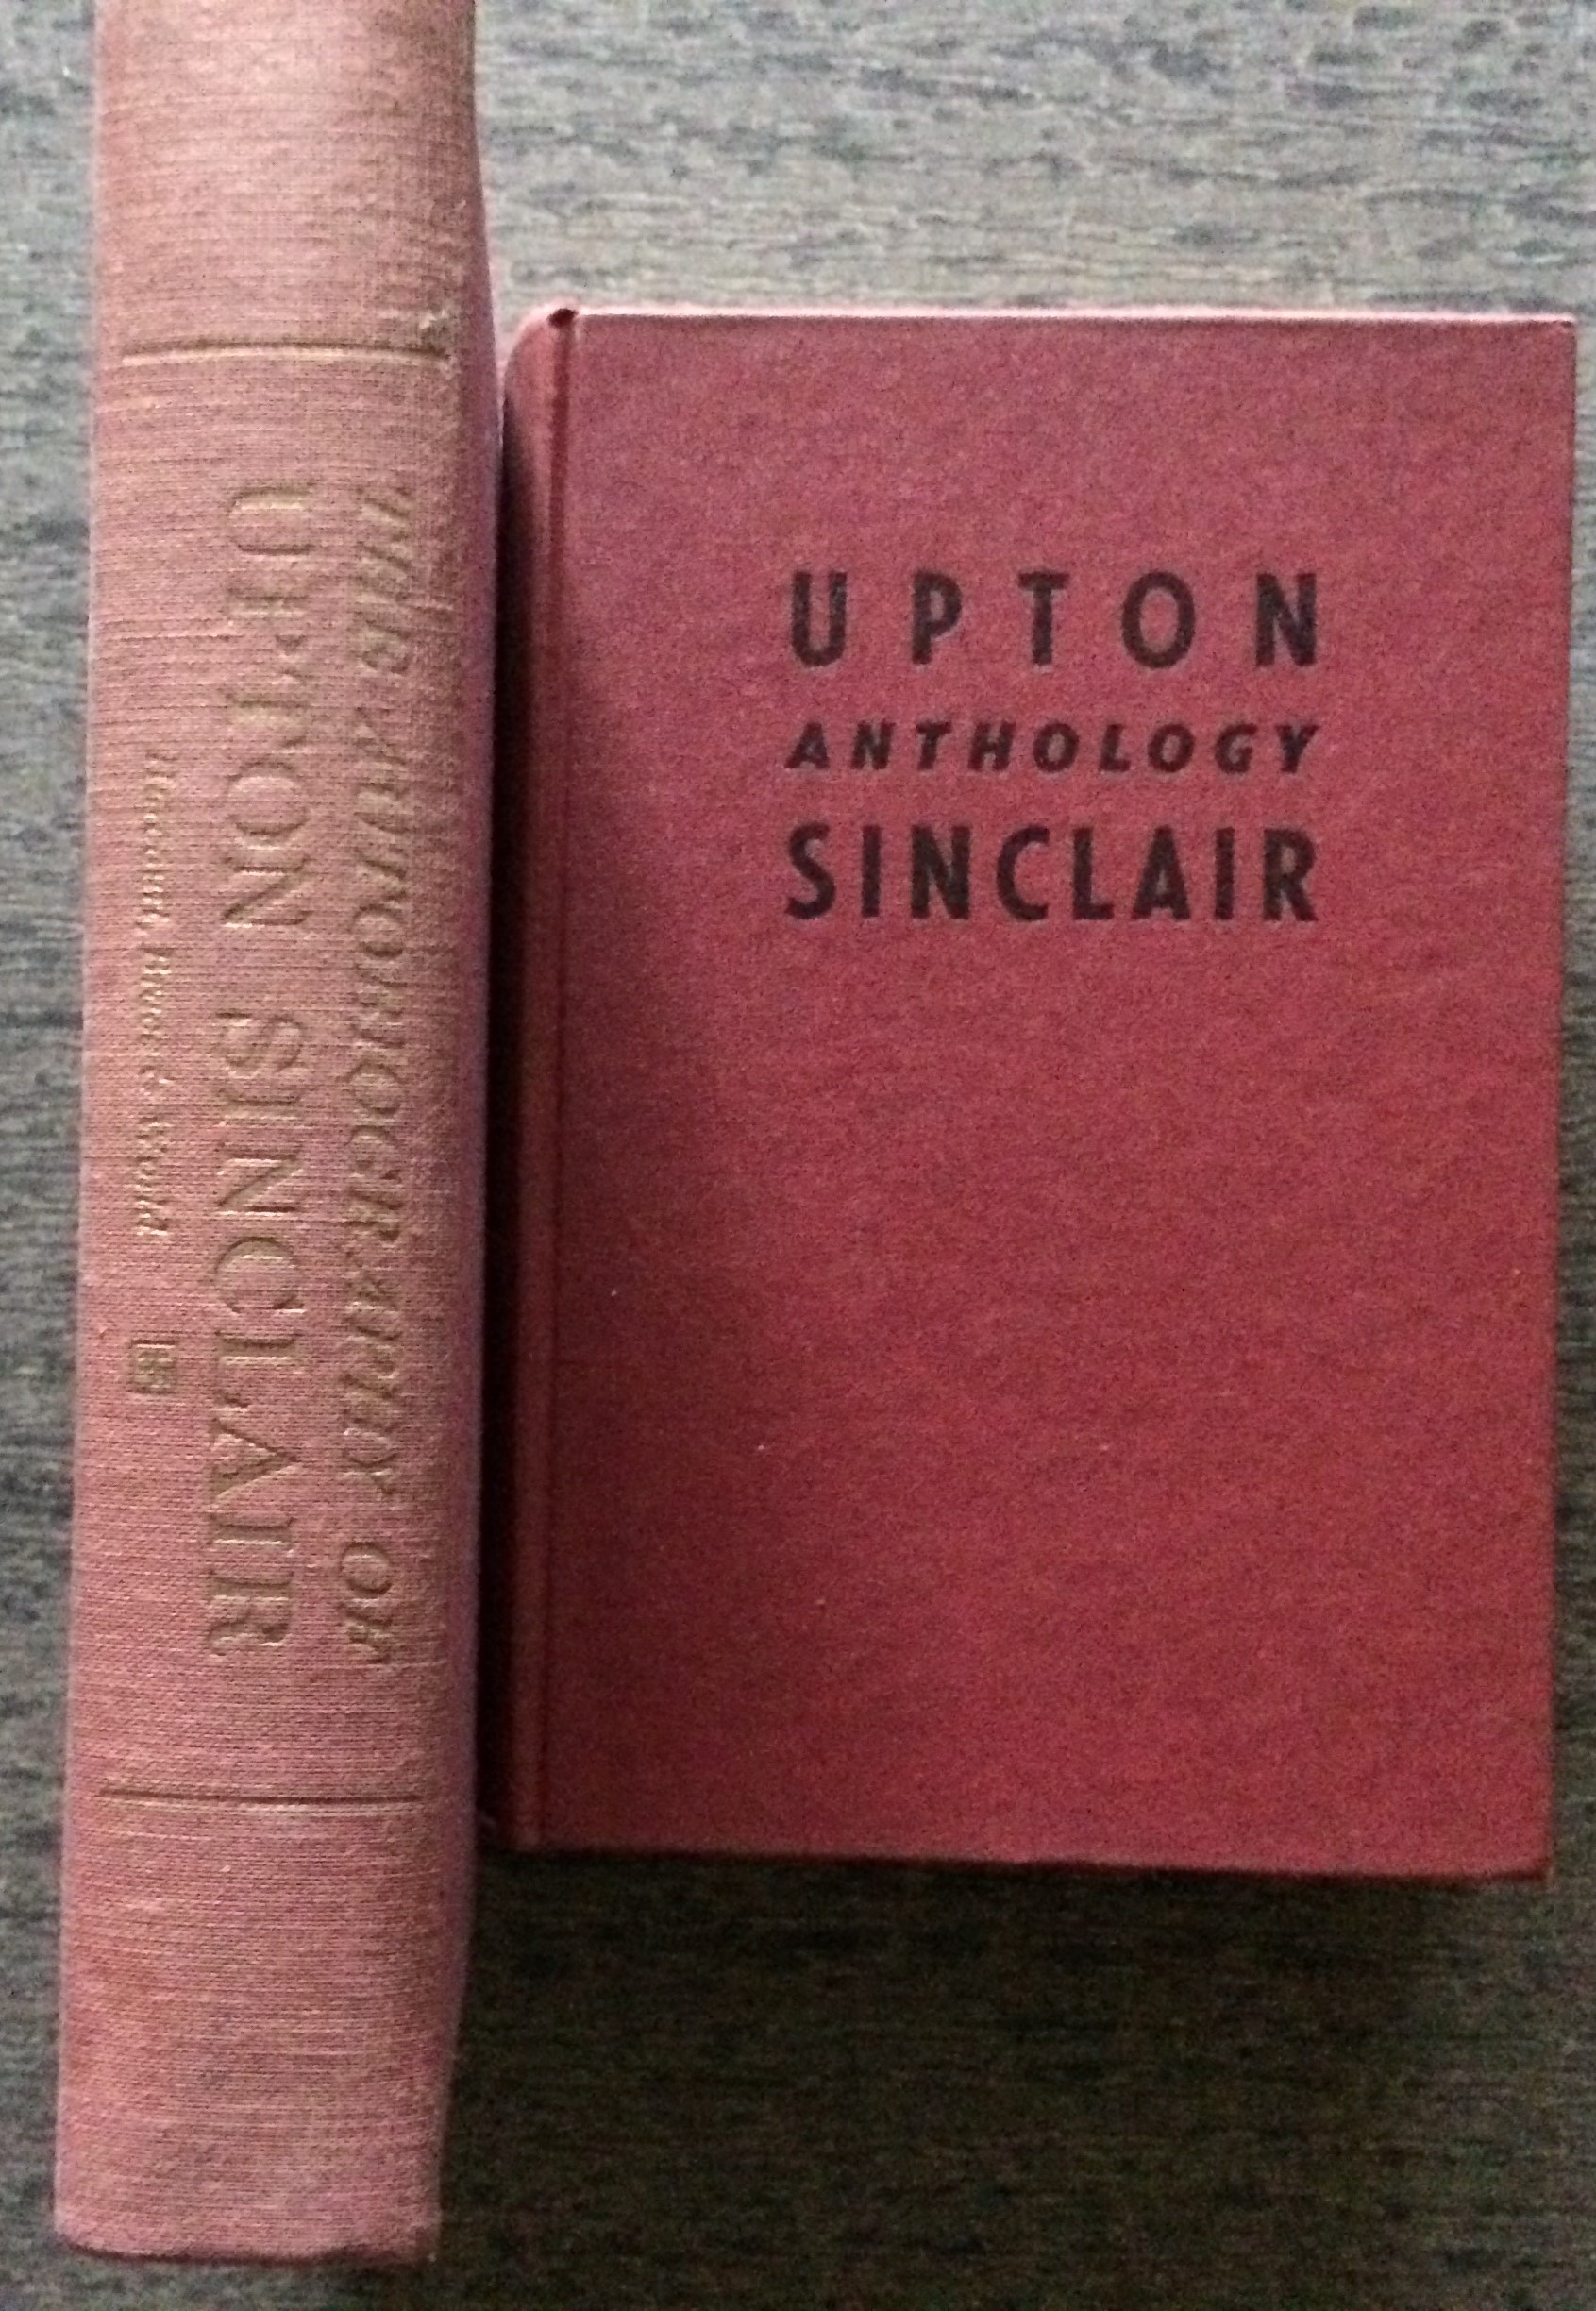 Image for (Two Items) Upton Sinclair Anthology, together with: The Autobiography of Upton Sinclair.